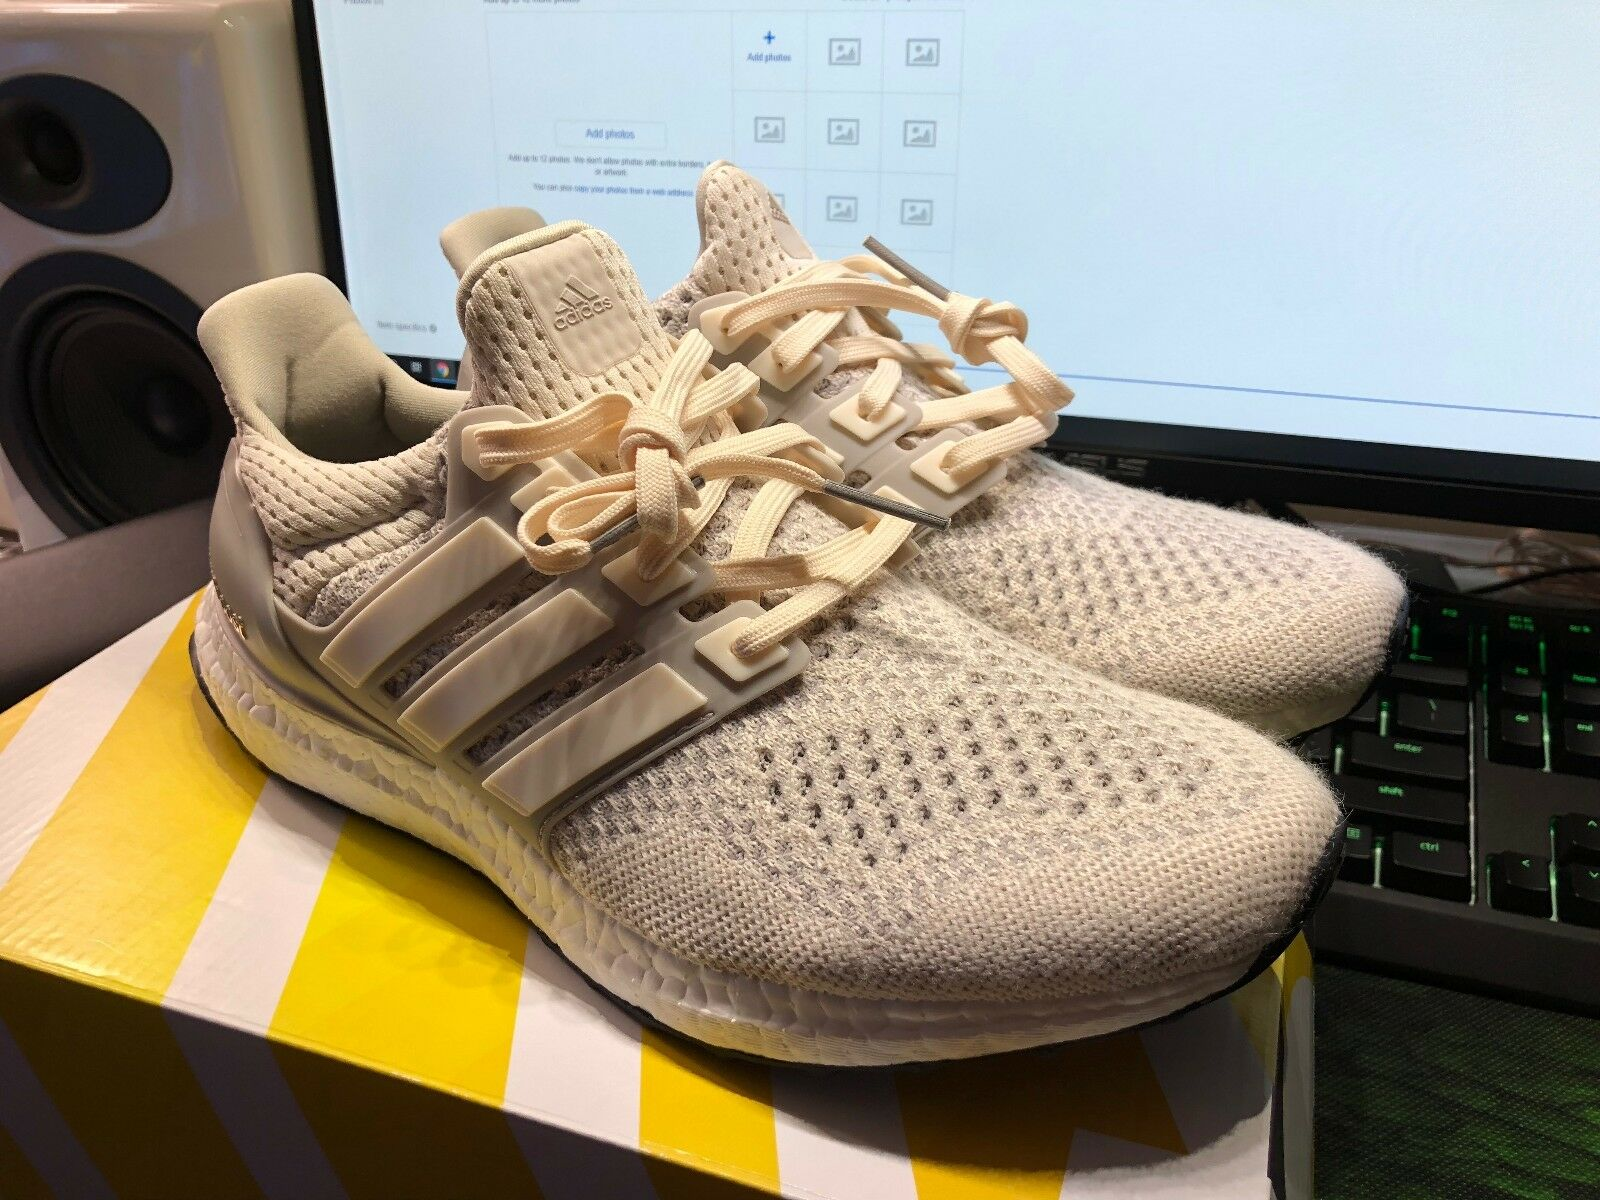 DS NEW Adidas Ultra Boost 1.0 Cream Chalk Size Men's 8.5 Limited